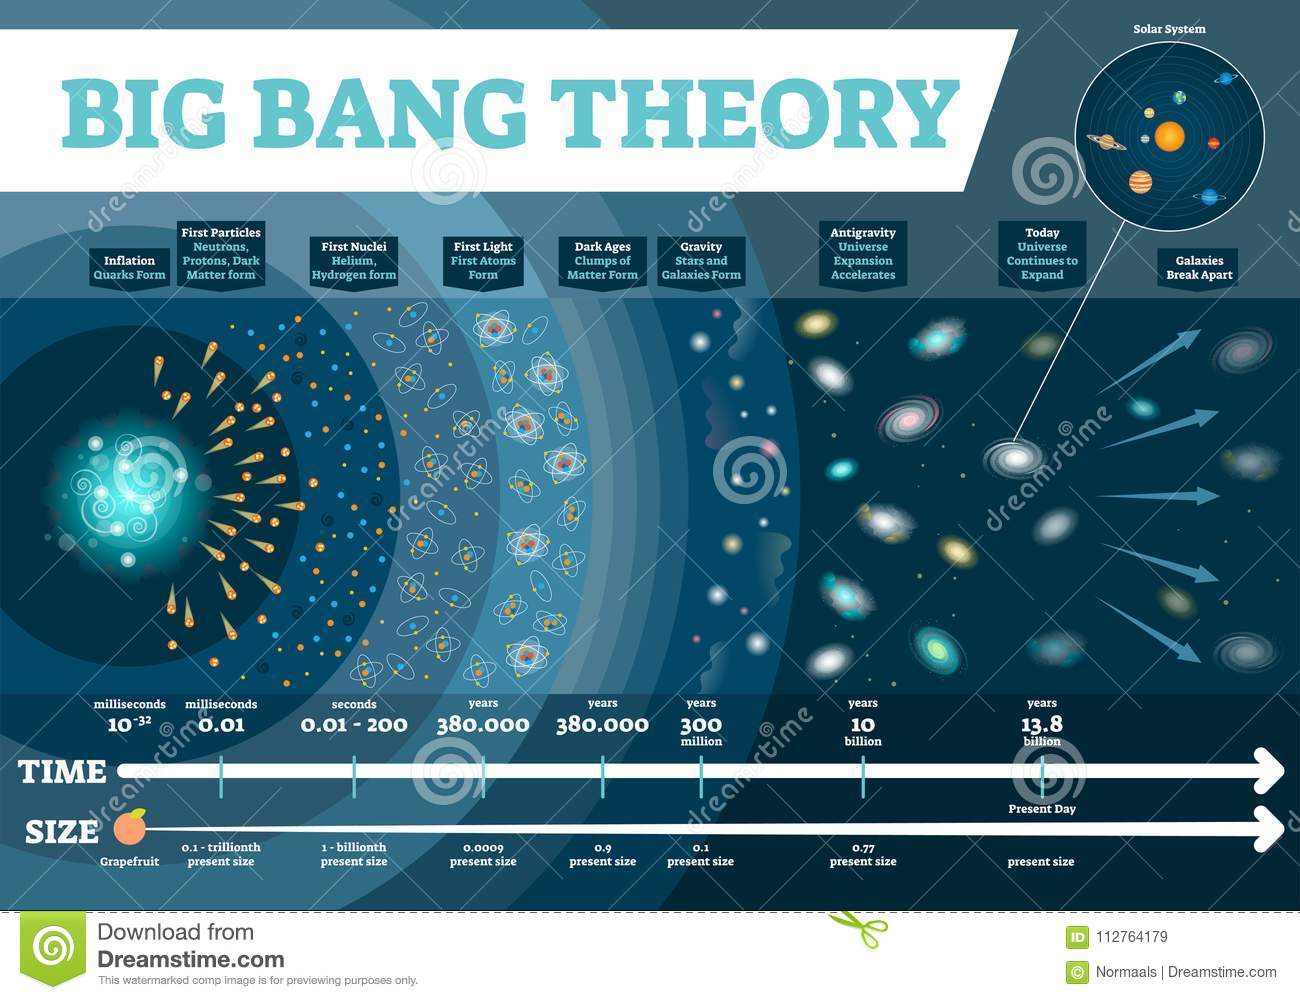 big bang theory vector illustration infographic  universe time and size  scale diagram with development stages